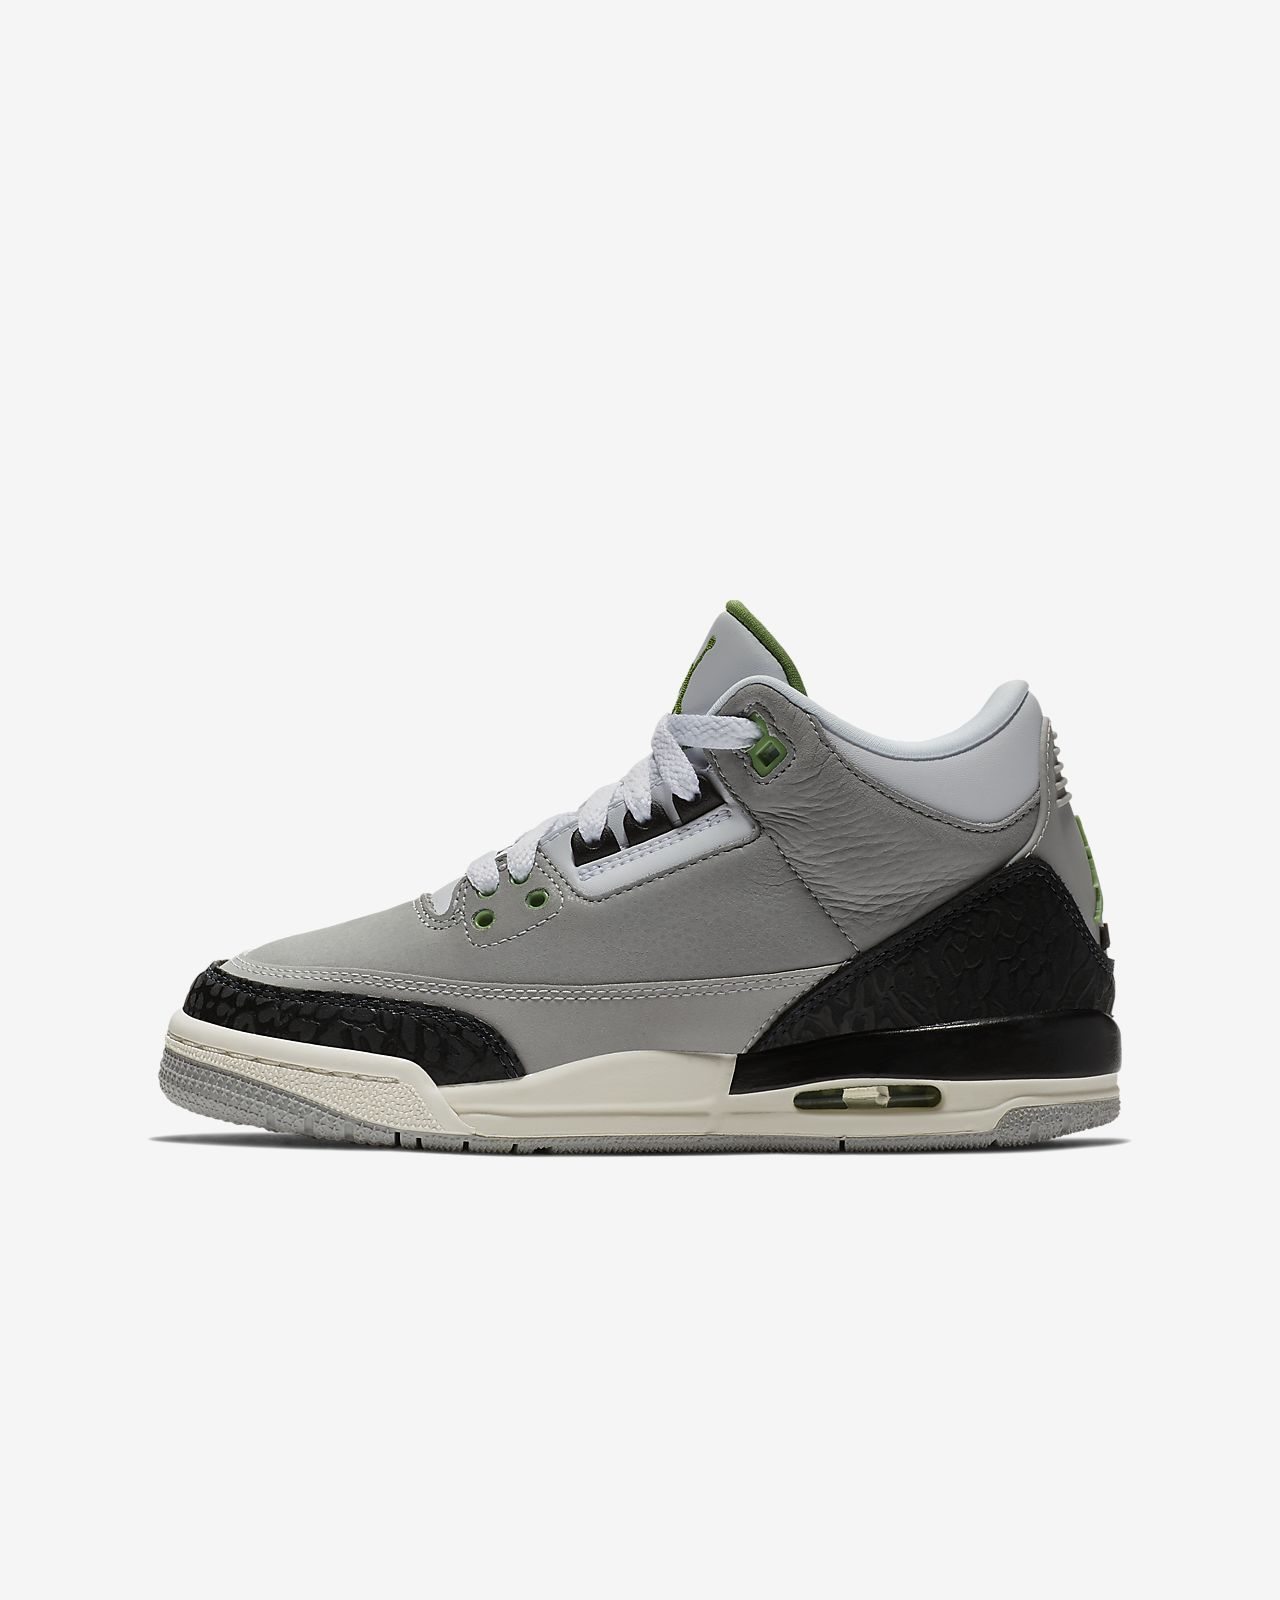 Air Jordan 3 Retro Kids' Shoe